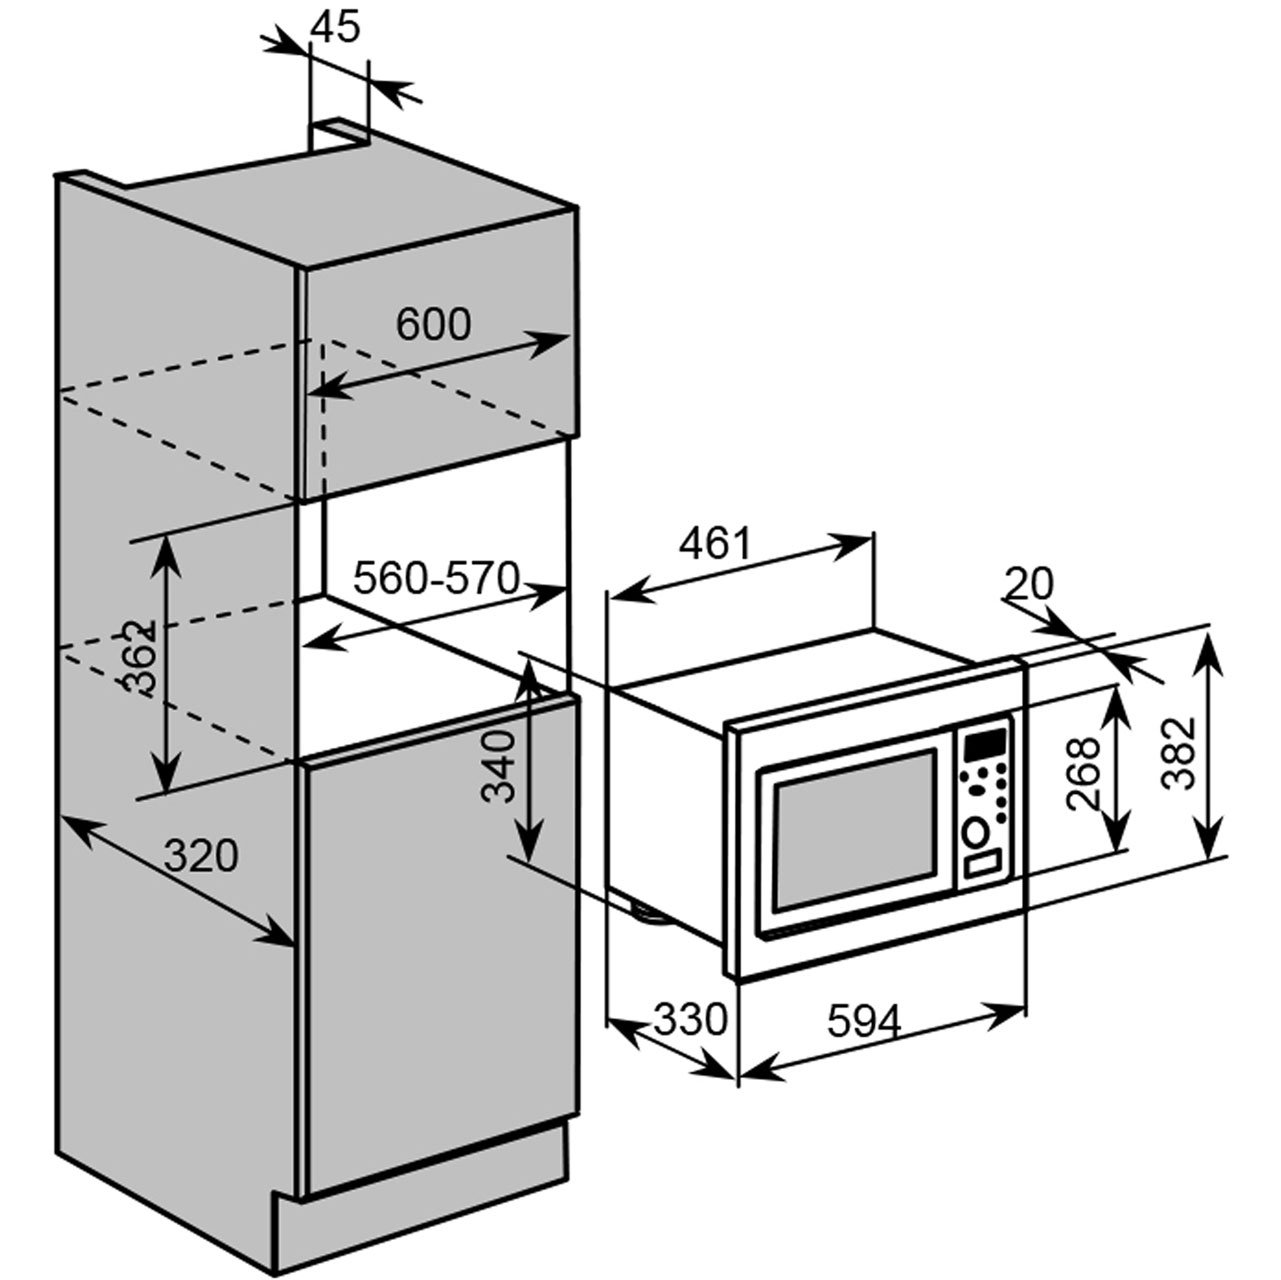 Microwave dimensions typical bestmicrowave for Built in microwave cabinet size